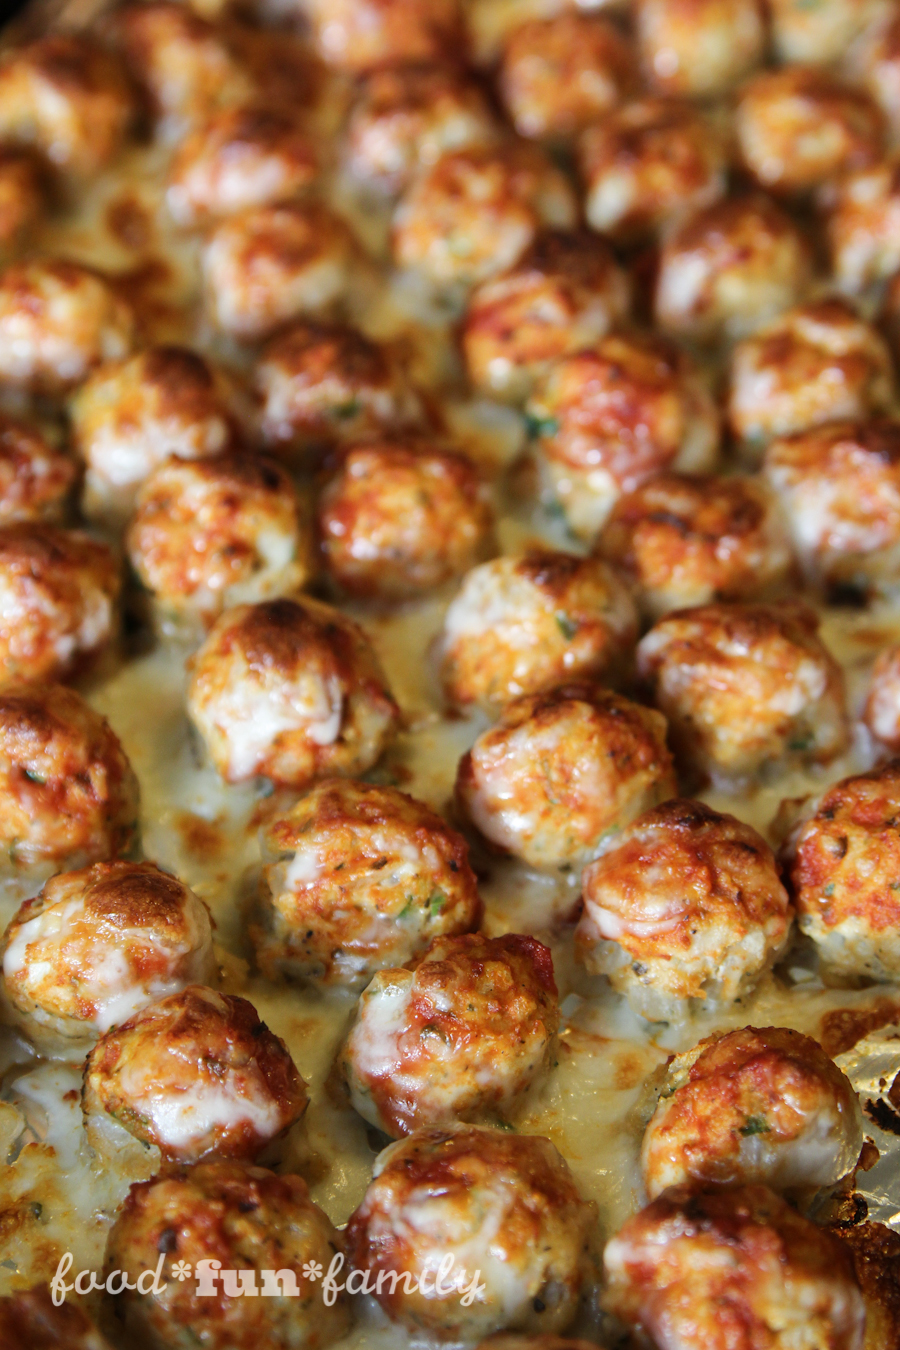 http://foodfunfamily.com/wp-content/uploads/2016/08/Chicken-Parmesan-Meatballs-11.jpg